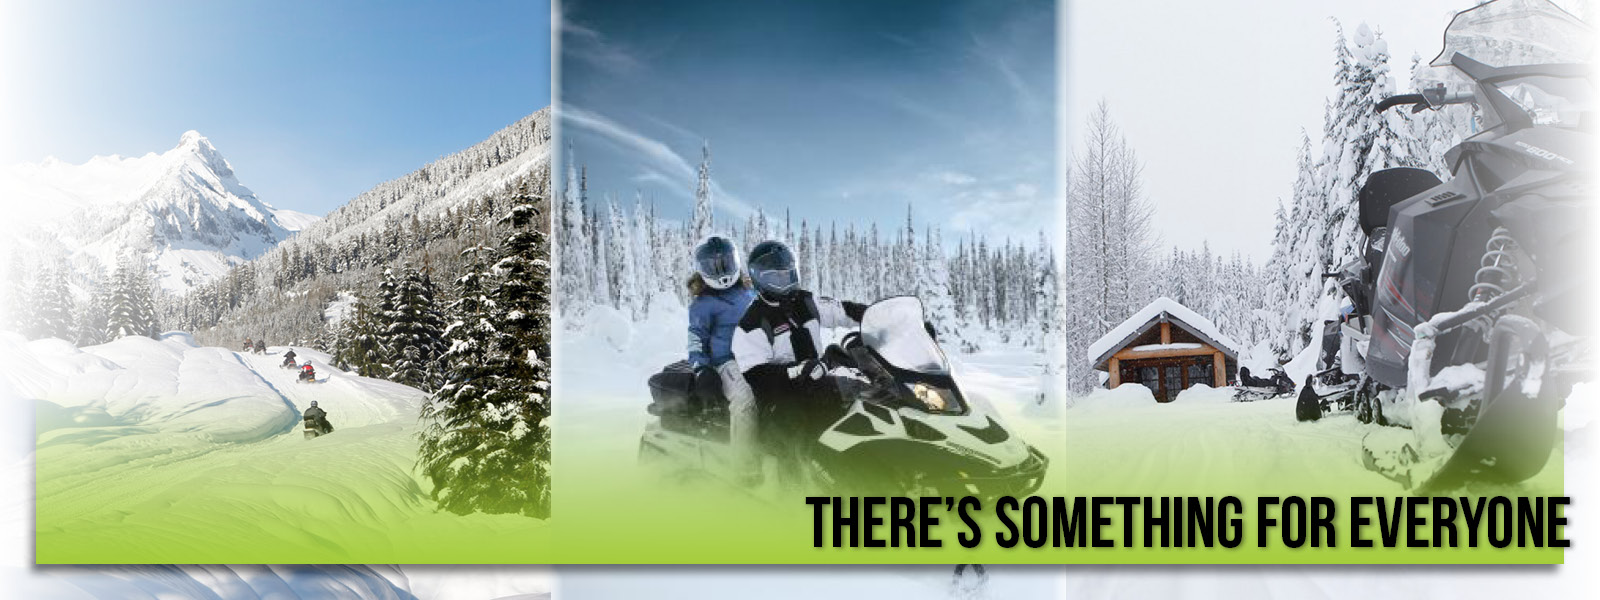 Whistler_Snowmoblie_headers_Tours186